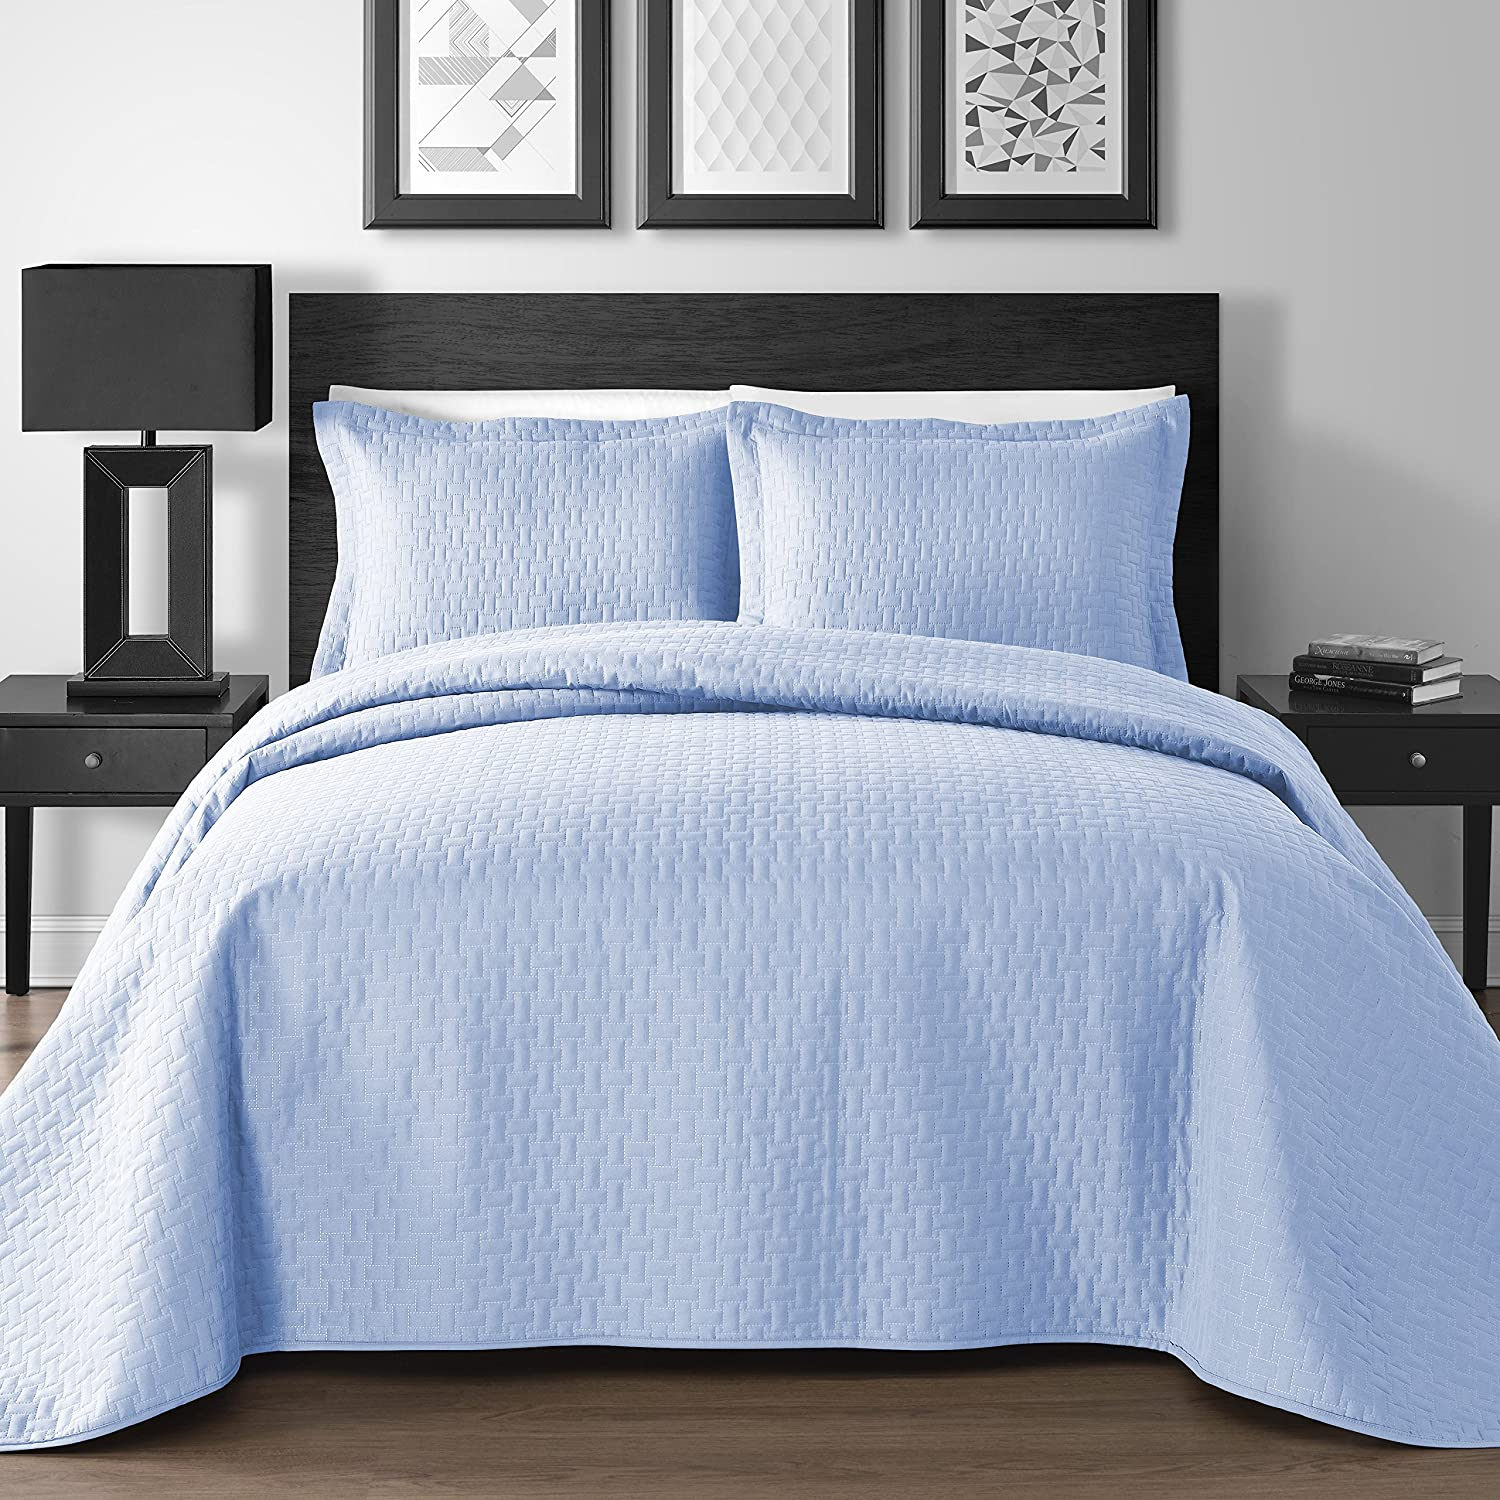 (Full/Queen, Blue) King & Queen Home Extra Lightweight Thermal Embossed Frame 3-piece Coverlet Set (Full/Queen, Blue) B078KCW6PH Full/Queen|ブルー ブルー Full/Queen